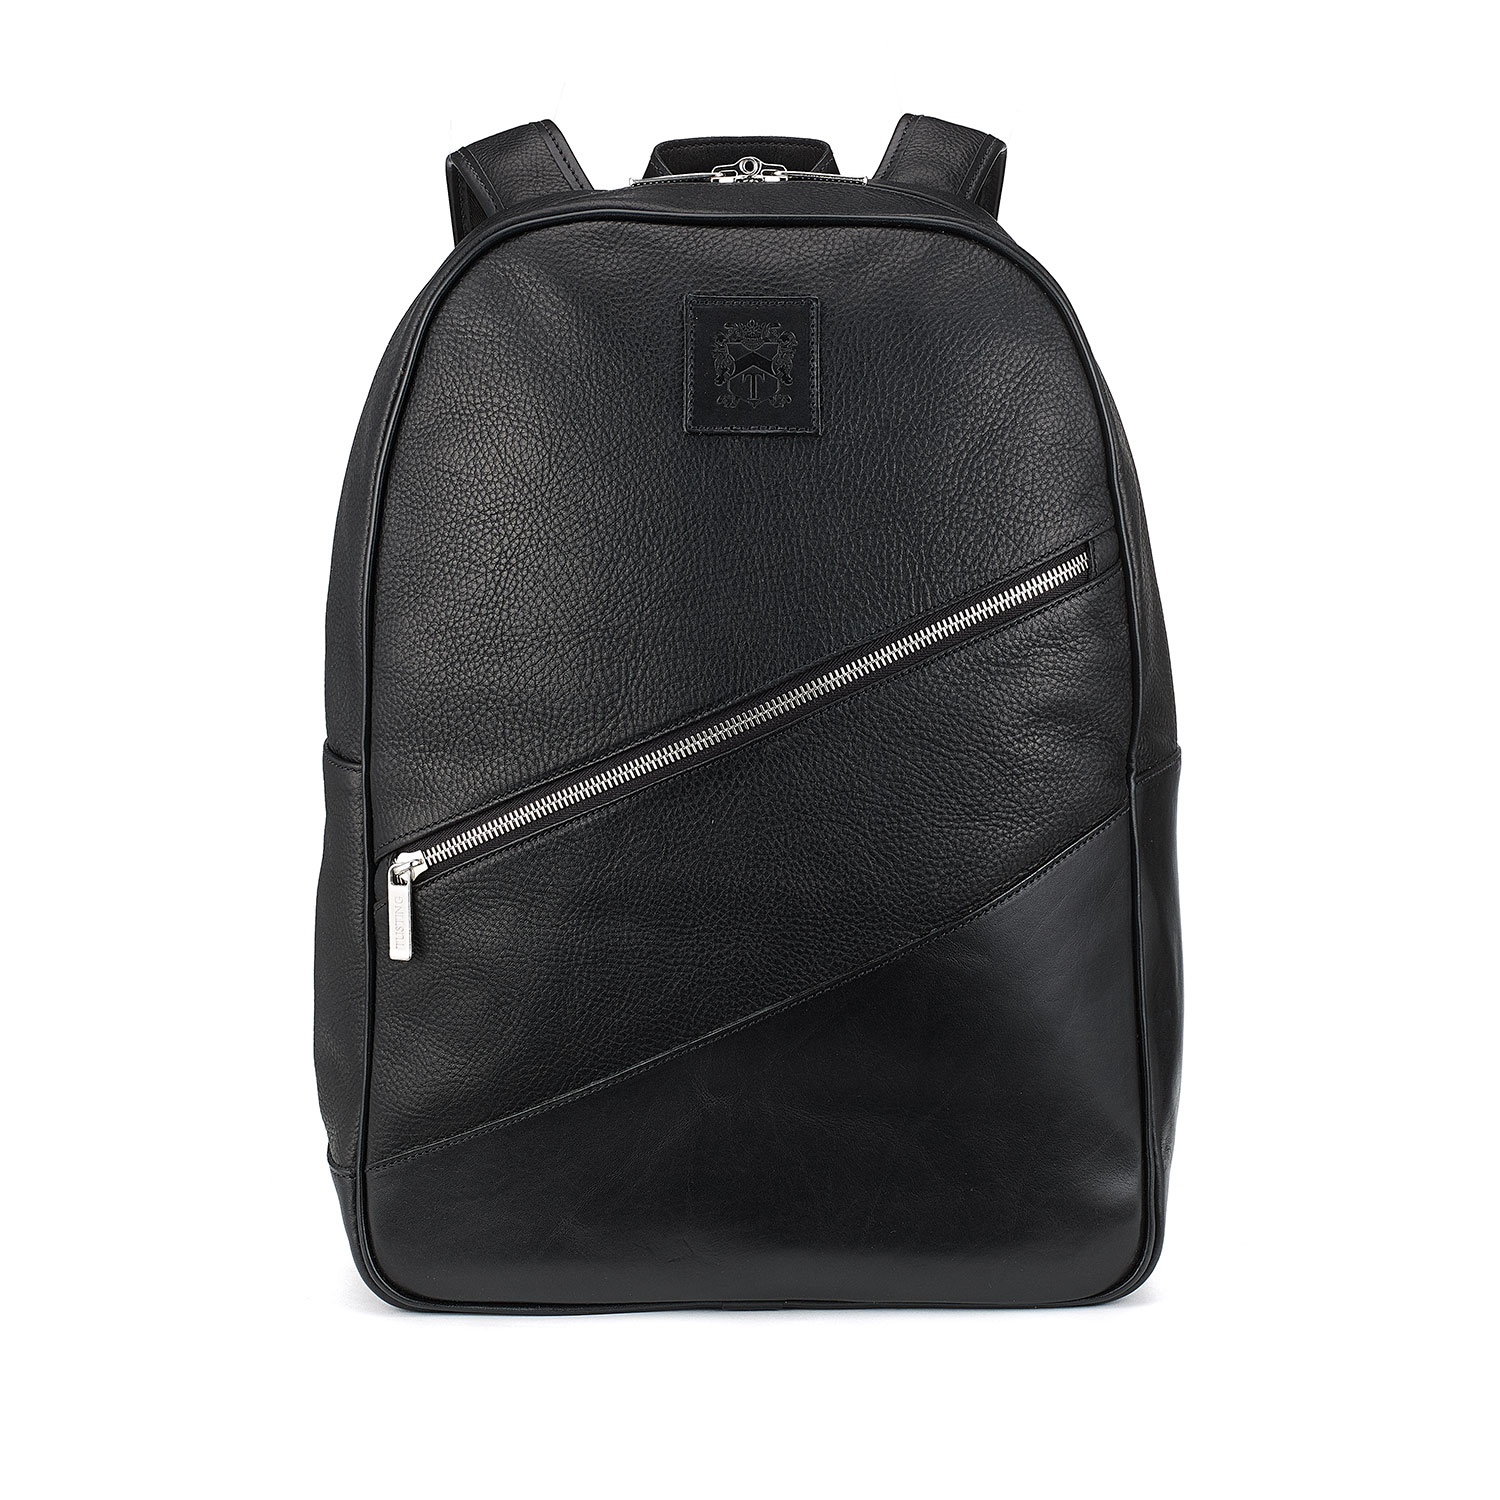 Tusting Black Leather Backpack, the Clifton